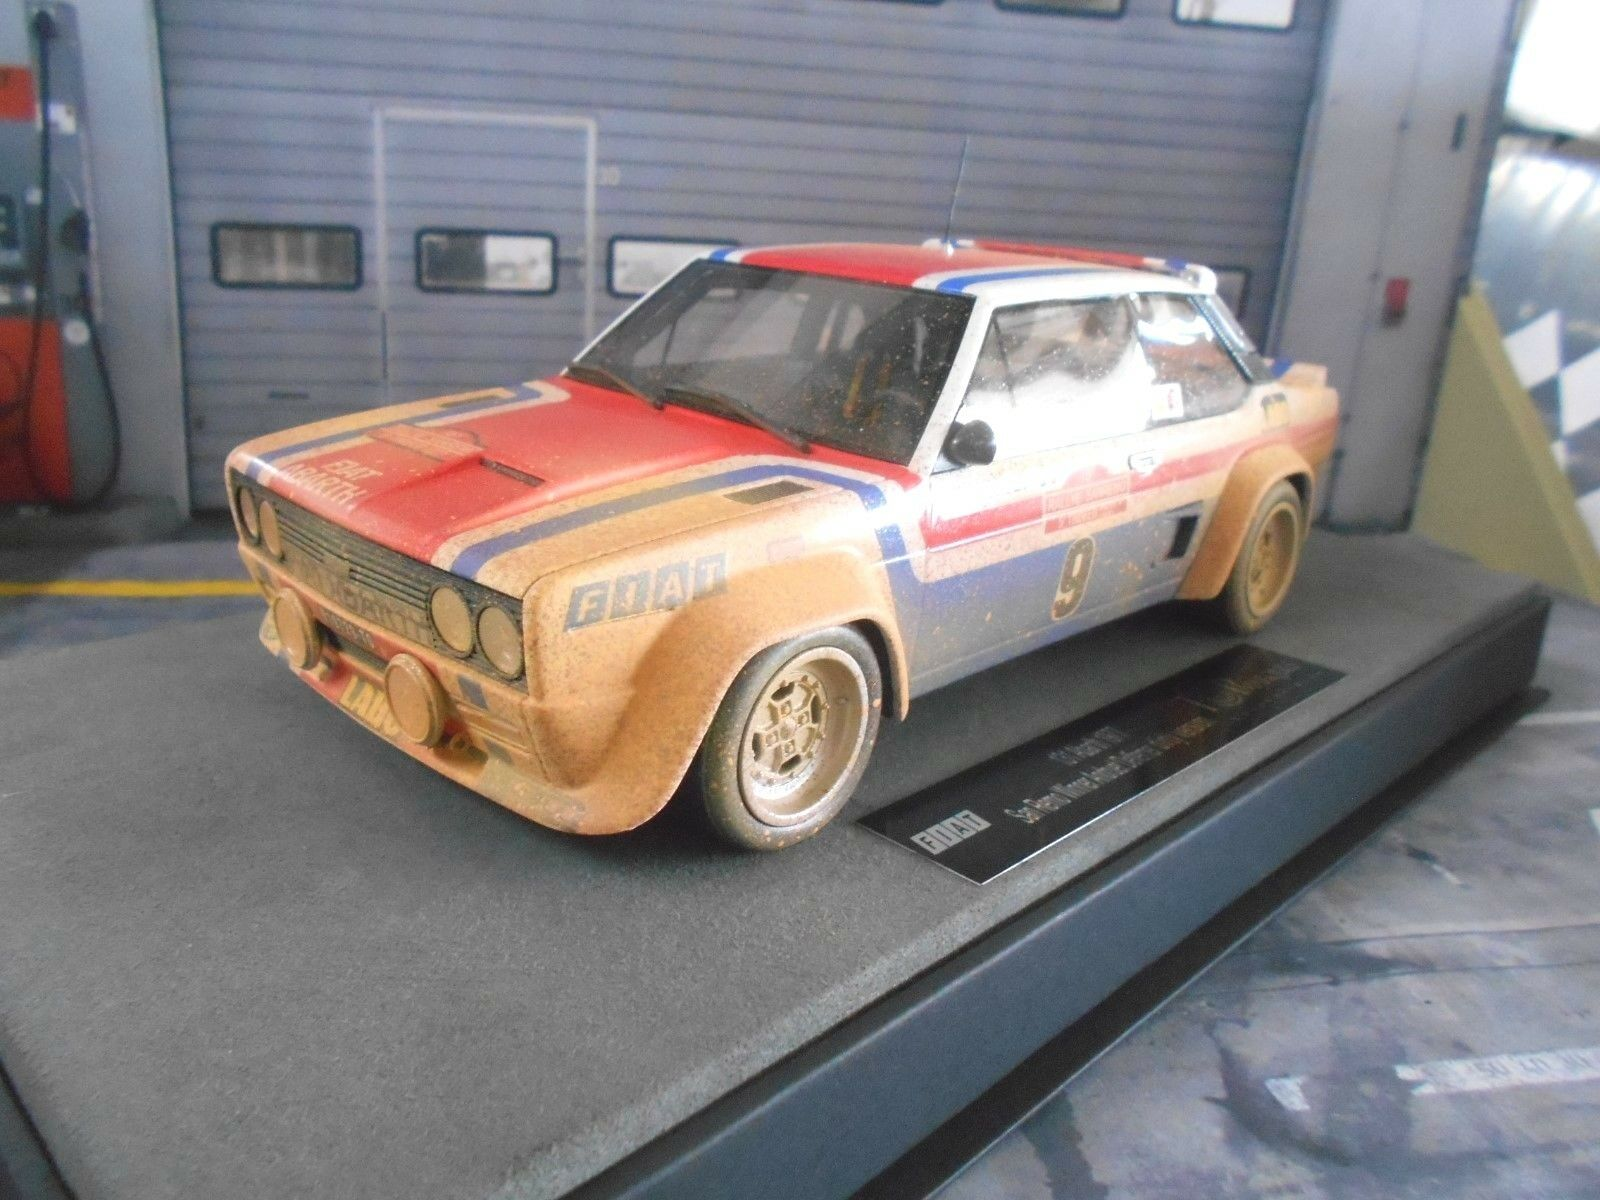 Fiat 131 Abarth Rallye San Remo 1977 Winner  9 Andruet Dirty V Top Marques 1 18